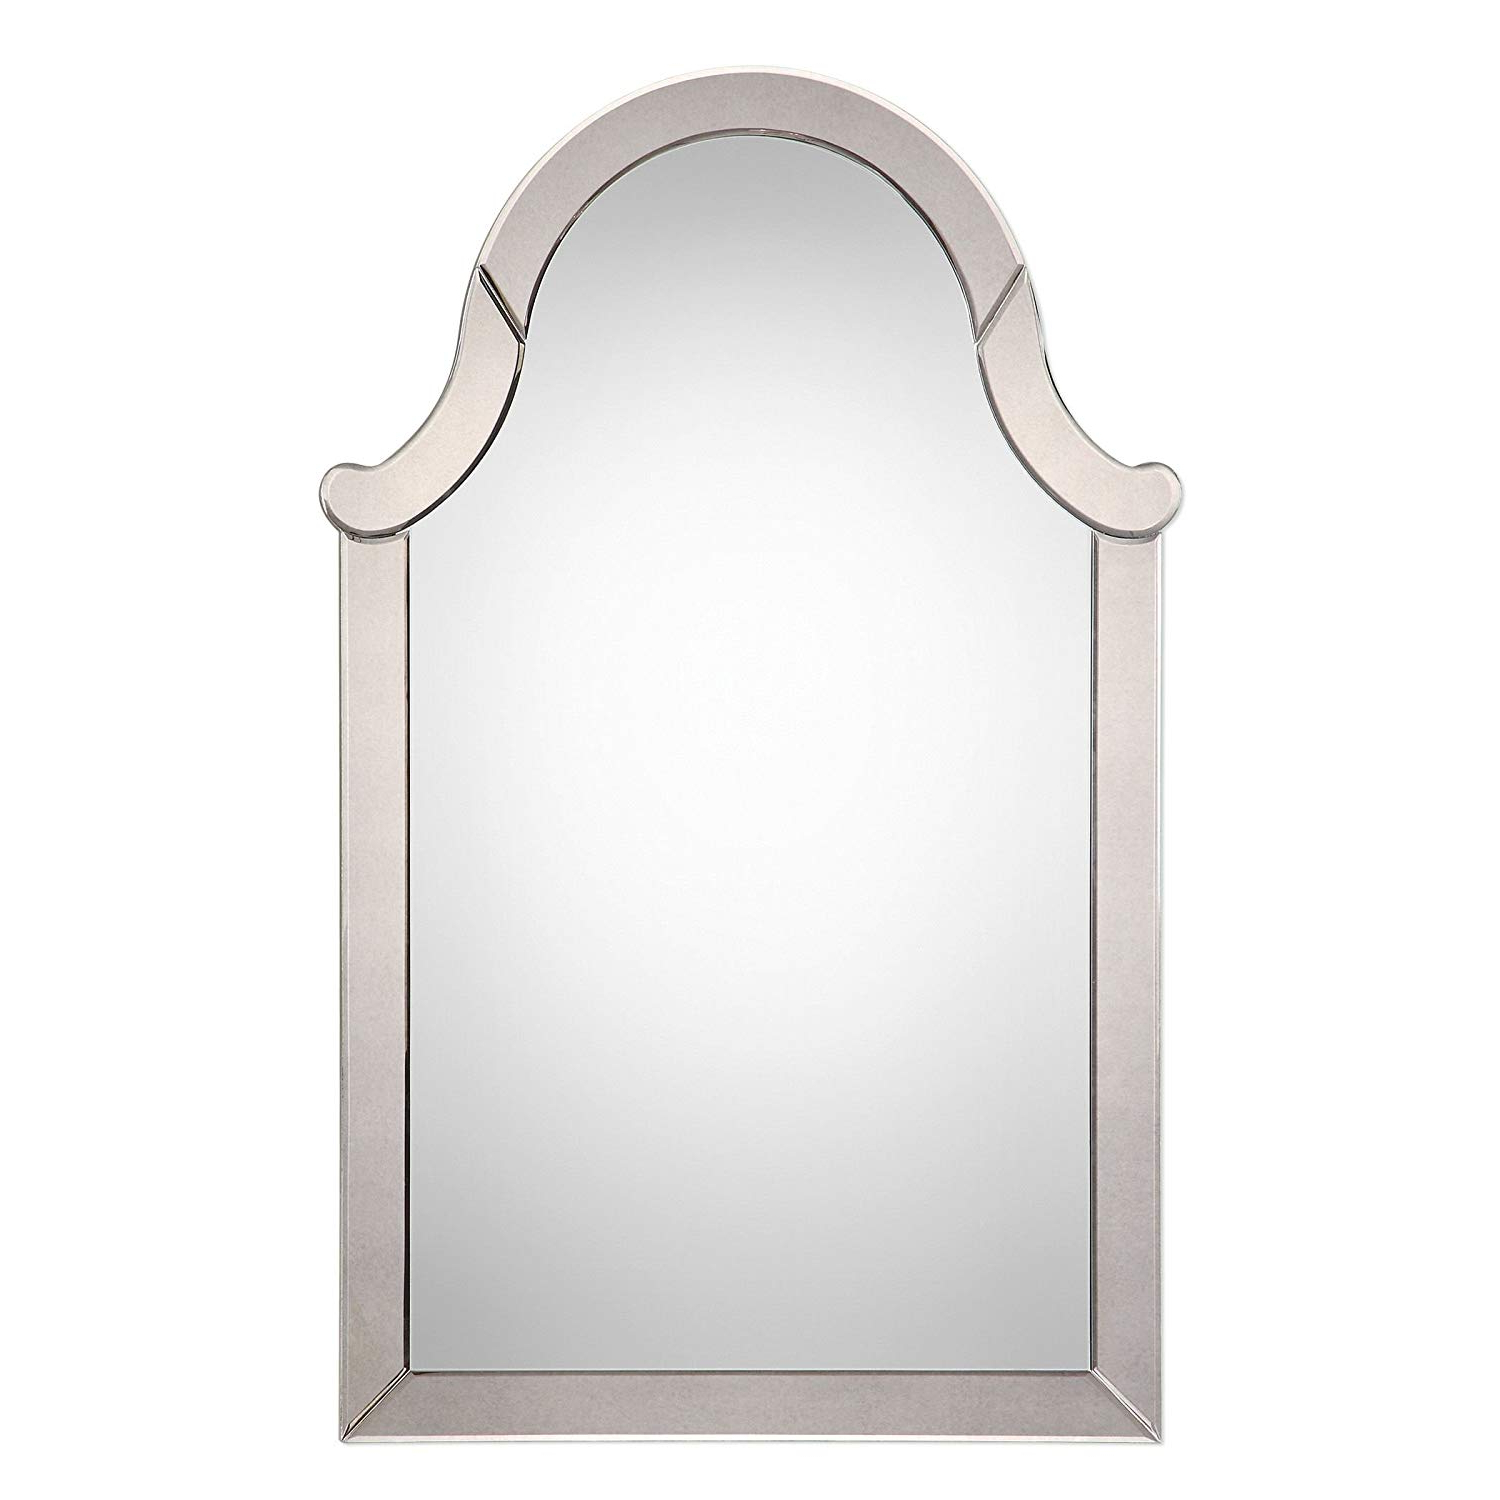 Amazon: My Swanky Home Frameless Arch Venetian Wall Mirror Inside Best And Newest Venetian Wall Mirrors (View 16 of 20)